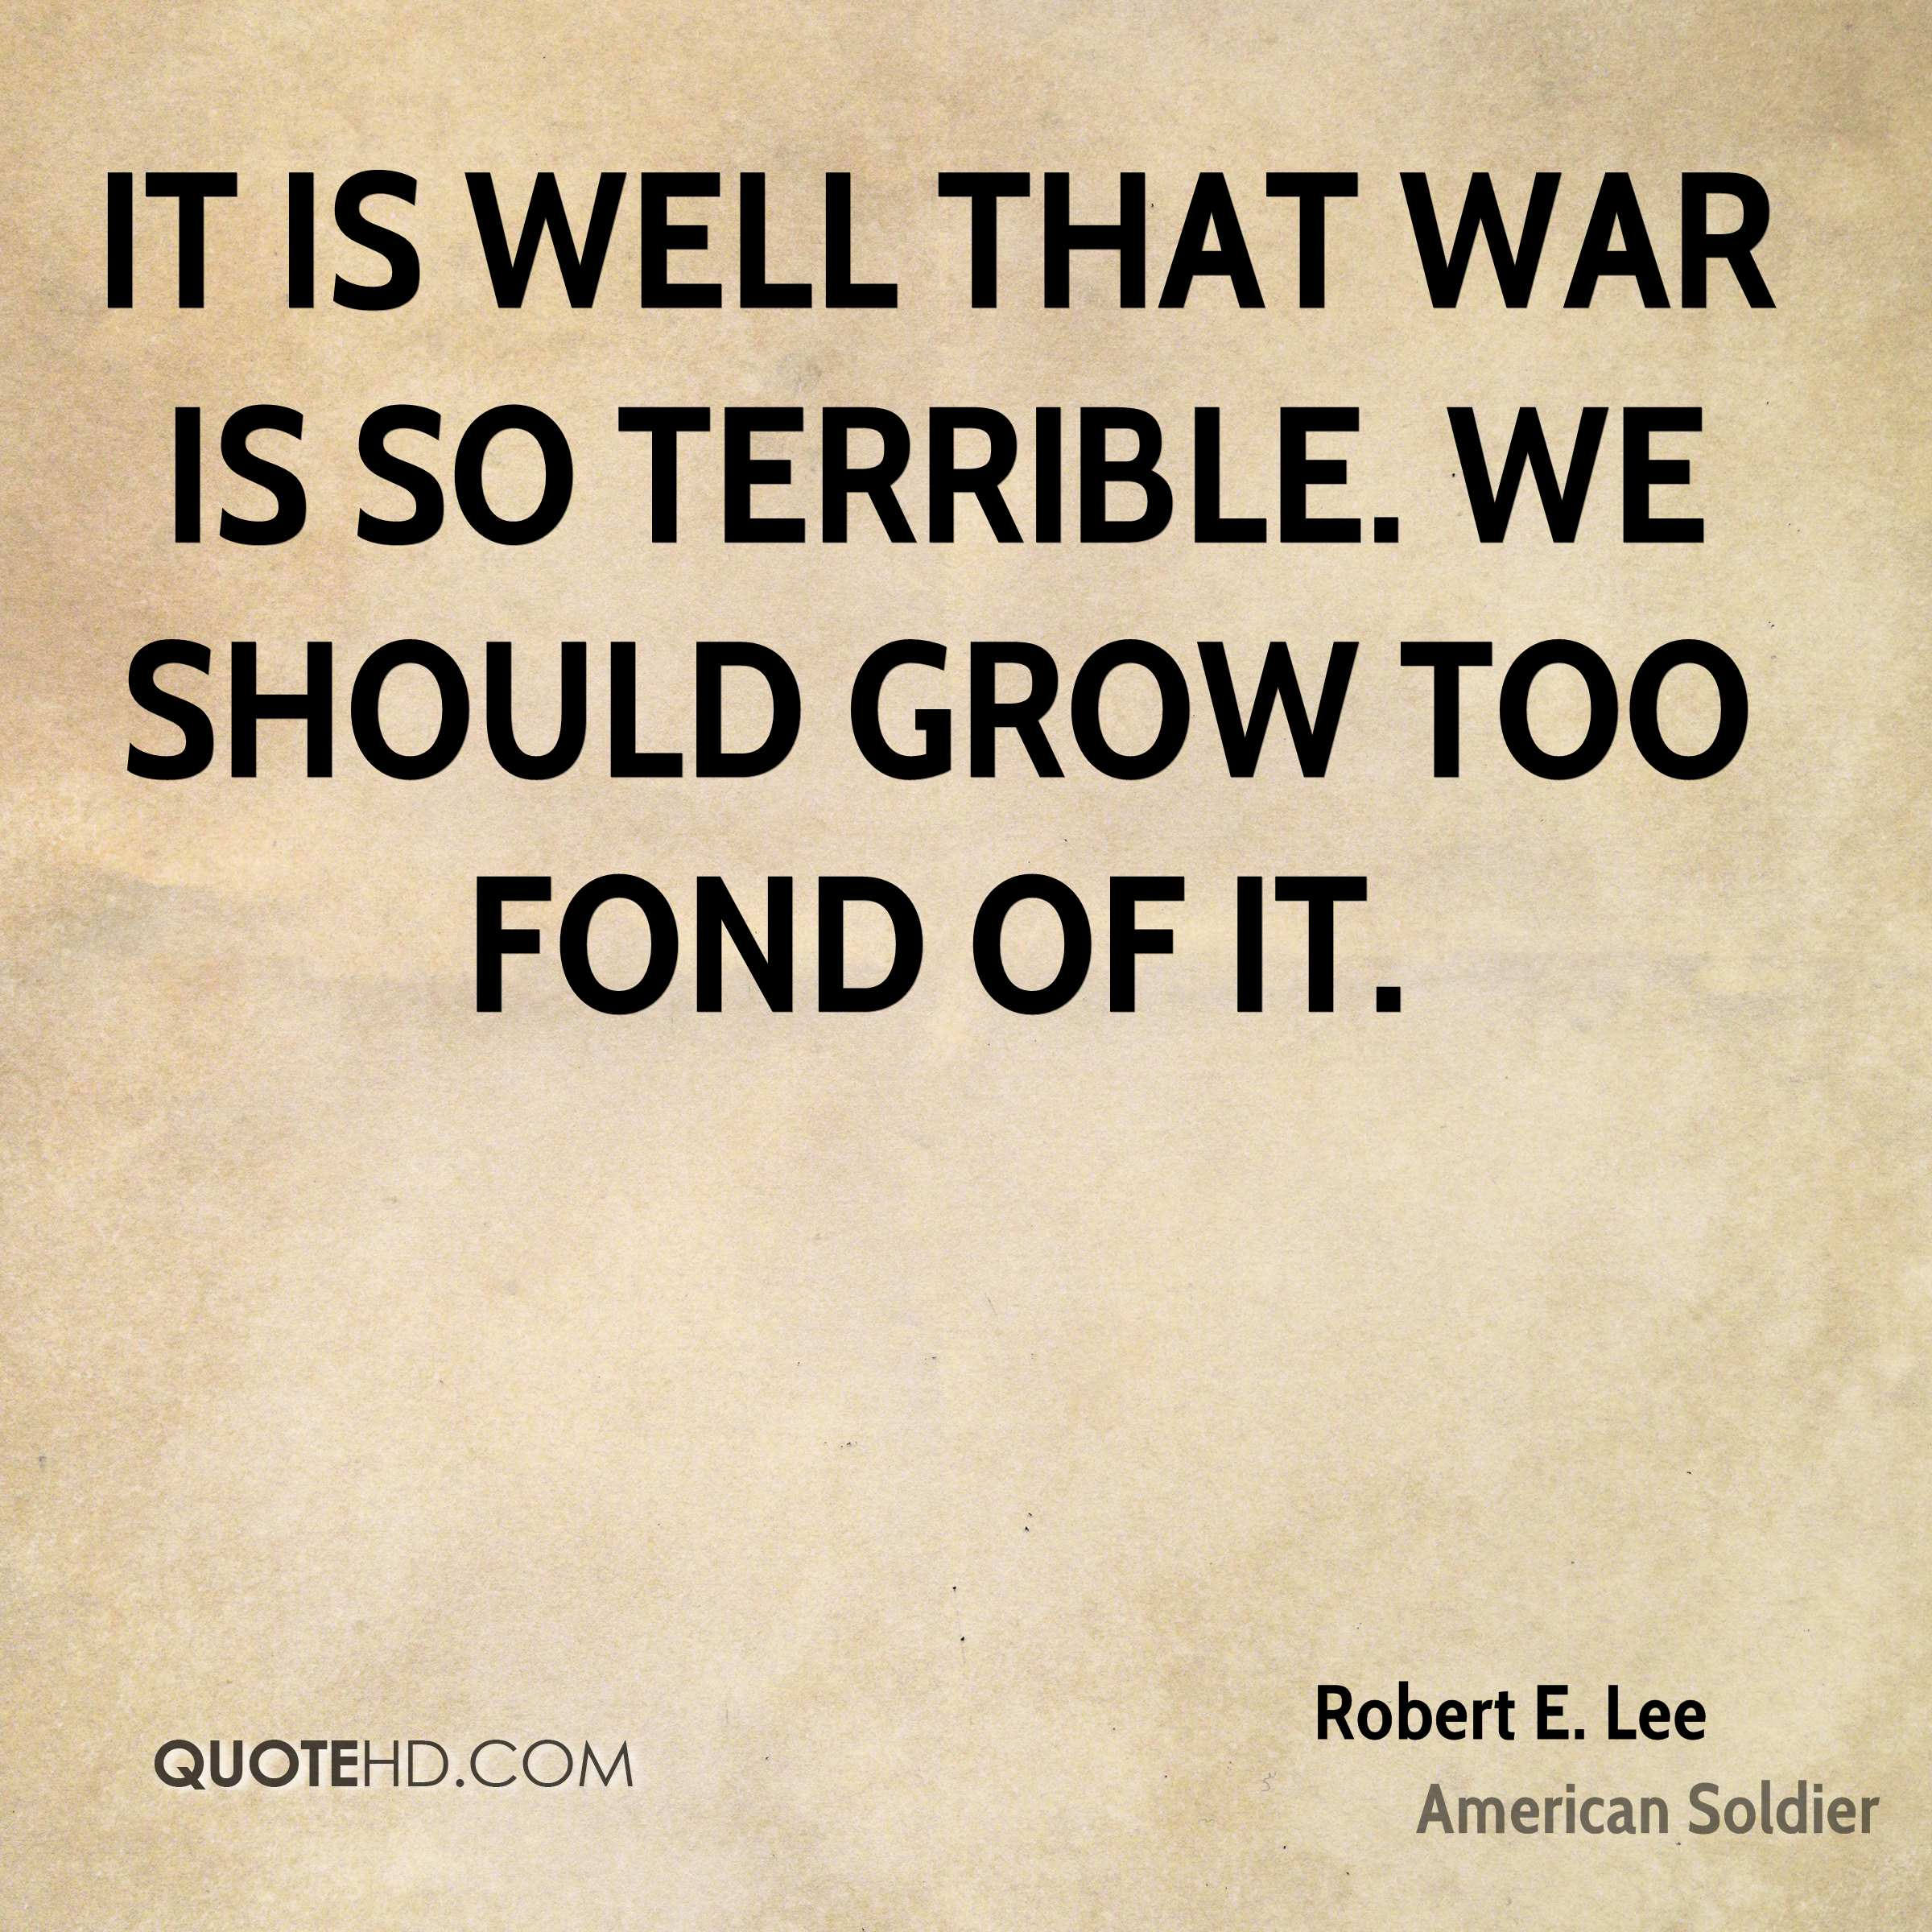 """we should not grow too fond Much less for japan — should we not seize it """"it is well that war is so terrible — we would grow too fond of it"""" americans have proven that we can."""